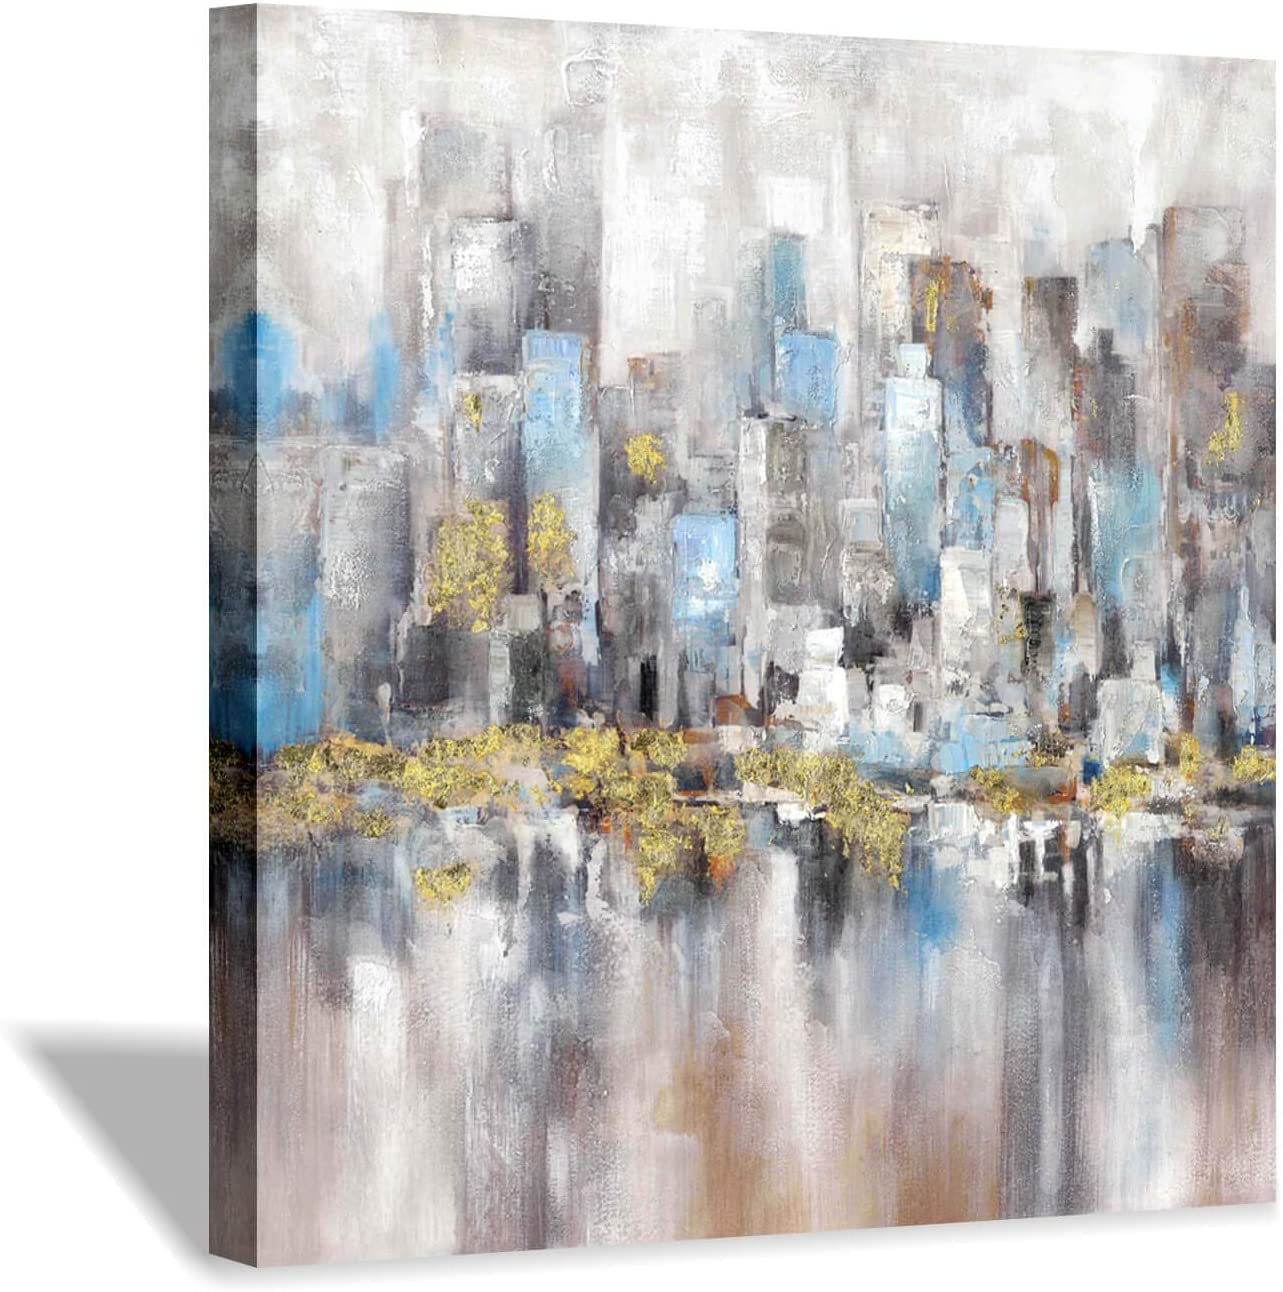 "Hardy Gallery Modern Cityscape Canvas Wall Picture: Abstract Artwork with Gold Foils Texture Picture on Canvas for Wall Decor (24"" x 24"" x 1 Panel)"